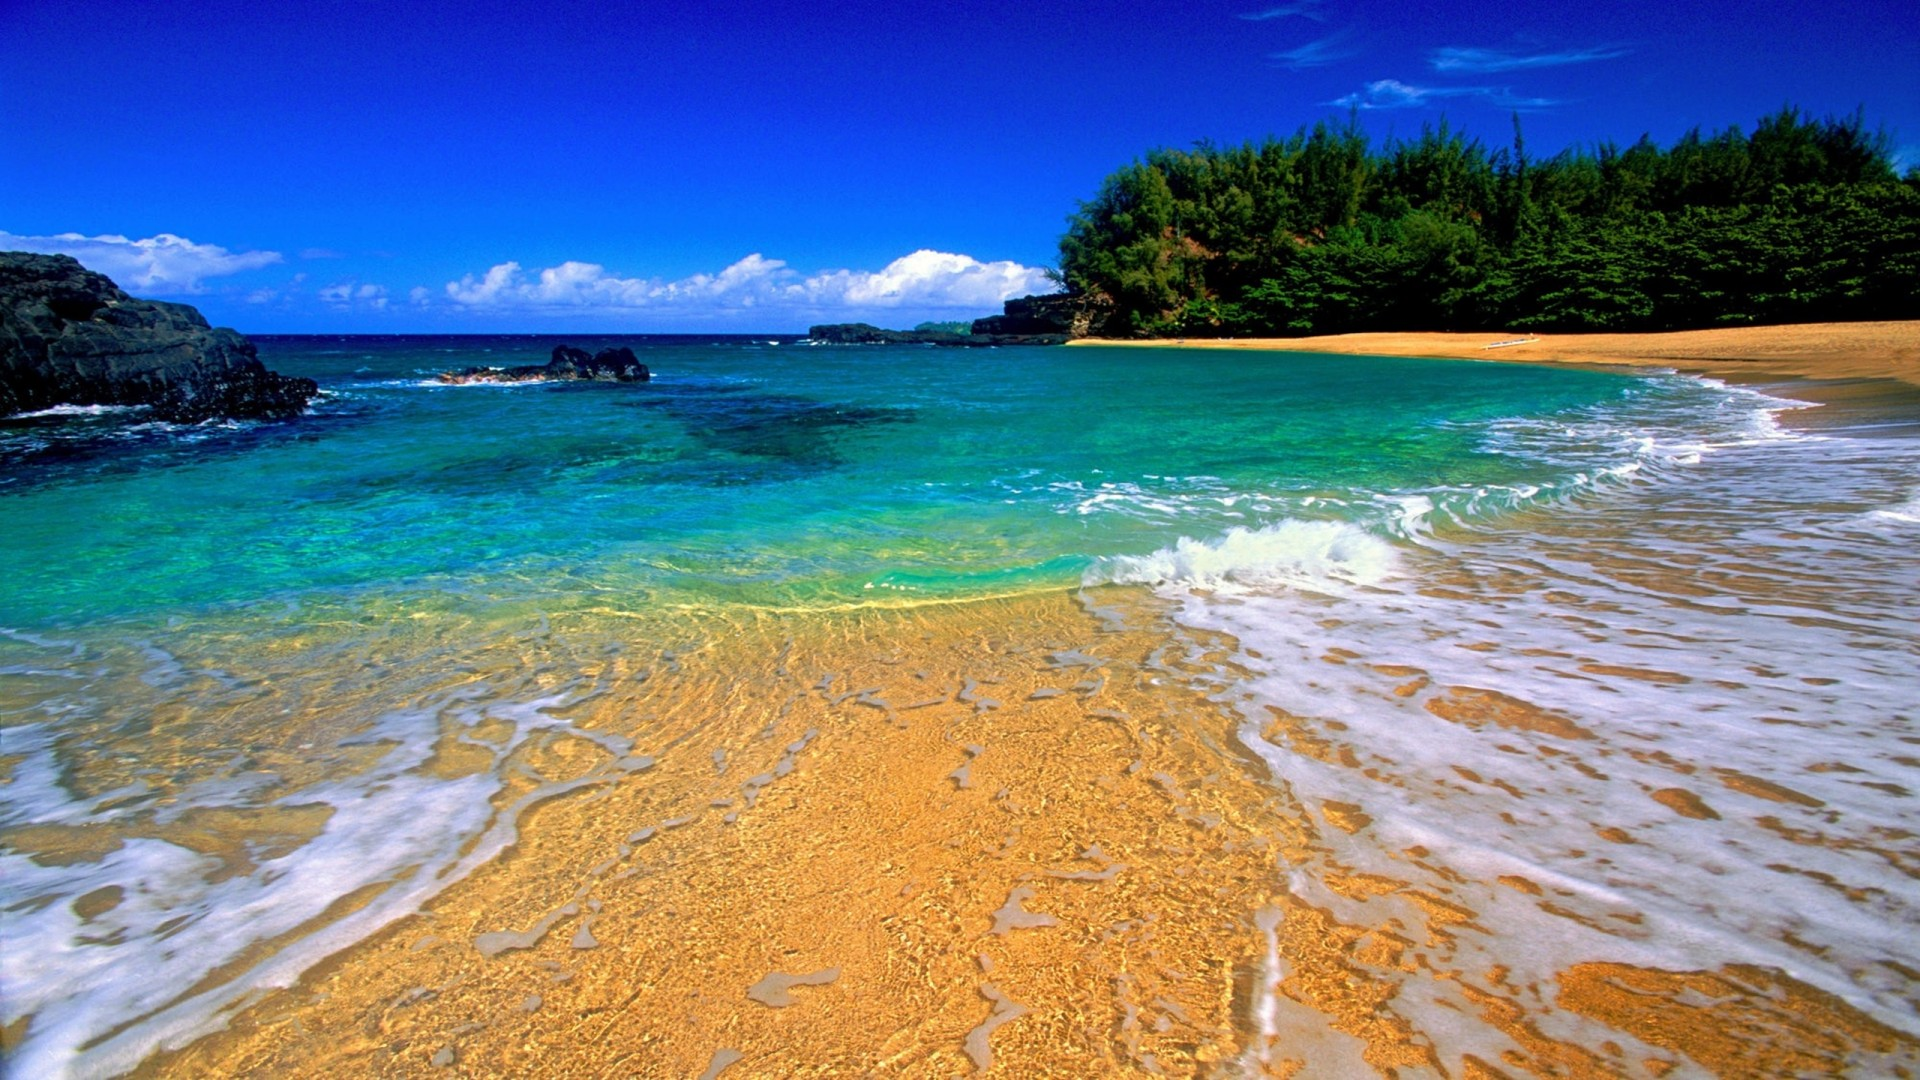 Lumahai Beach Kauai Hawaii 324 Wallpapers13com 1920x1080